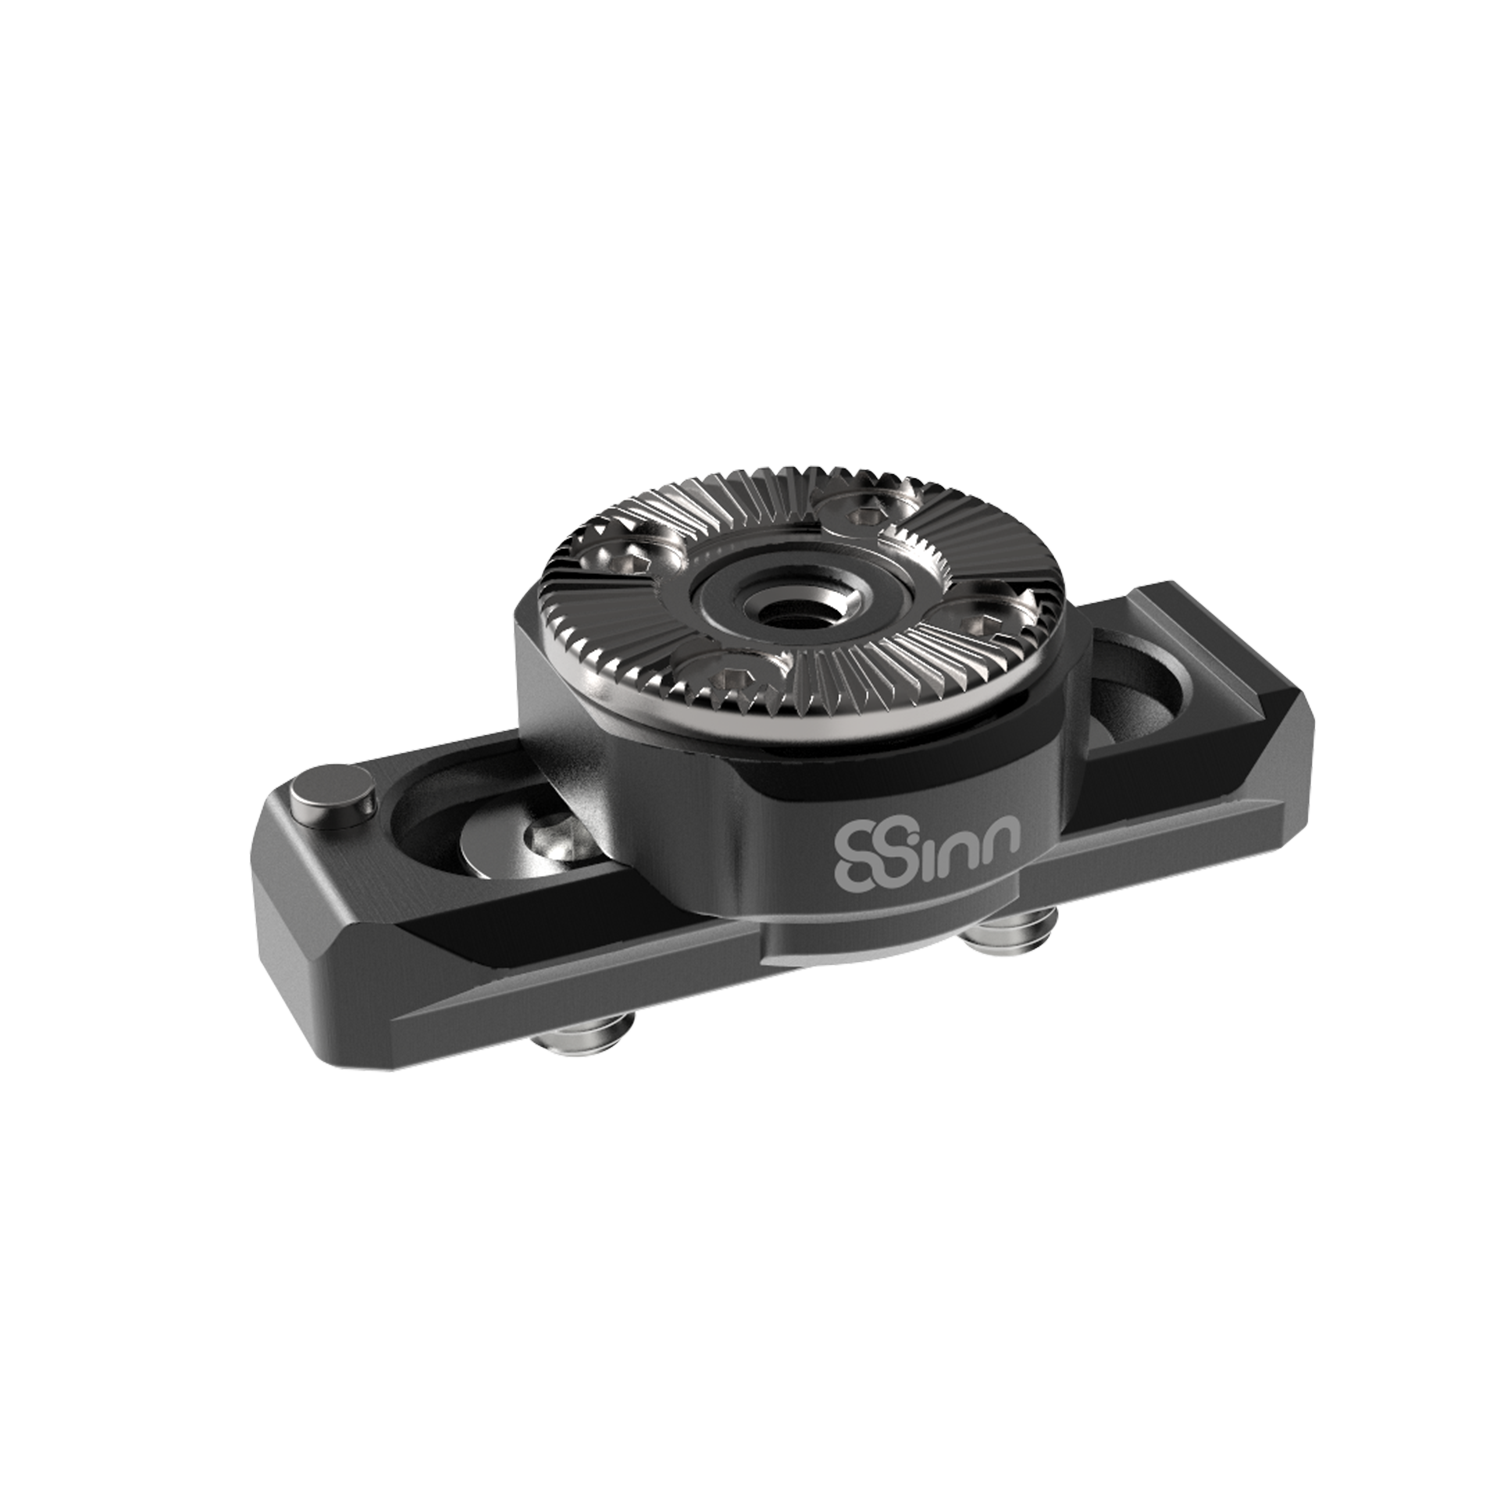 8Sinn|Arri NATO Rosette 28mm Mount + Safety NATO Rail 60mm - Viledge Online Store